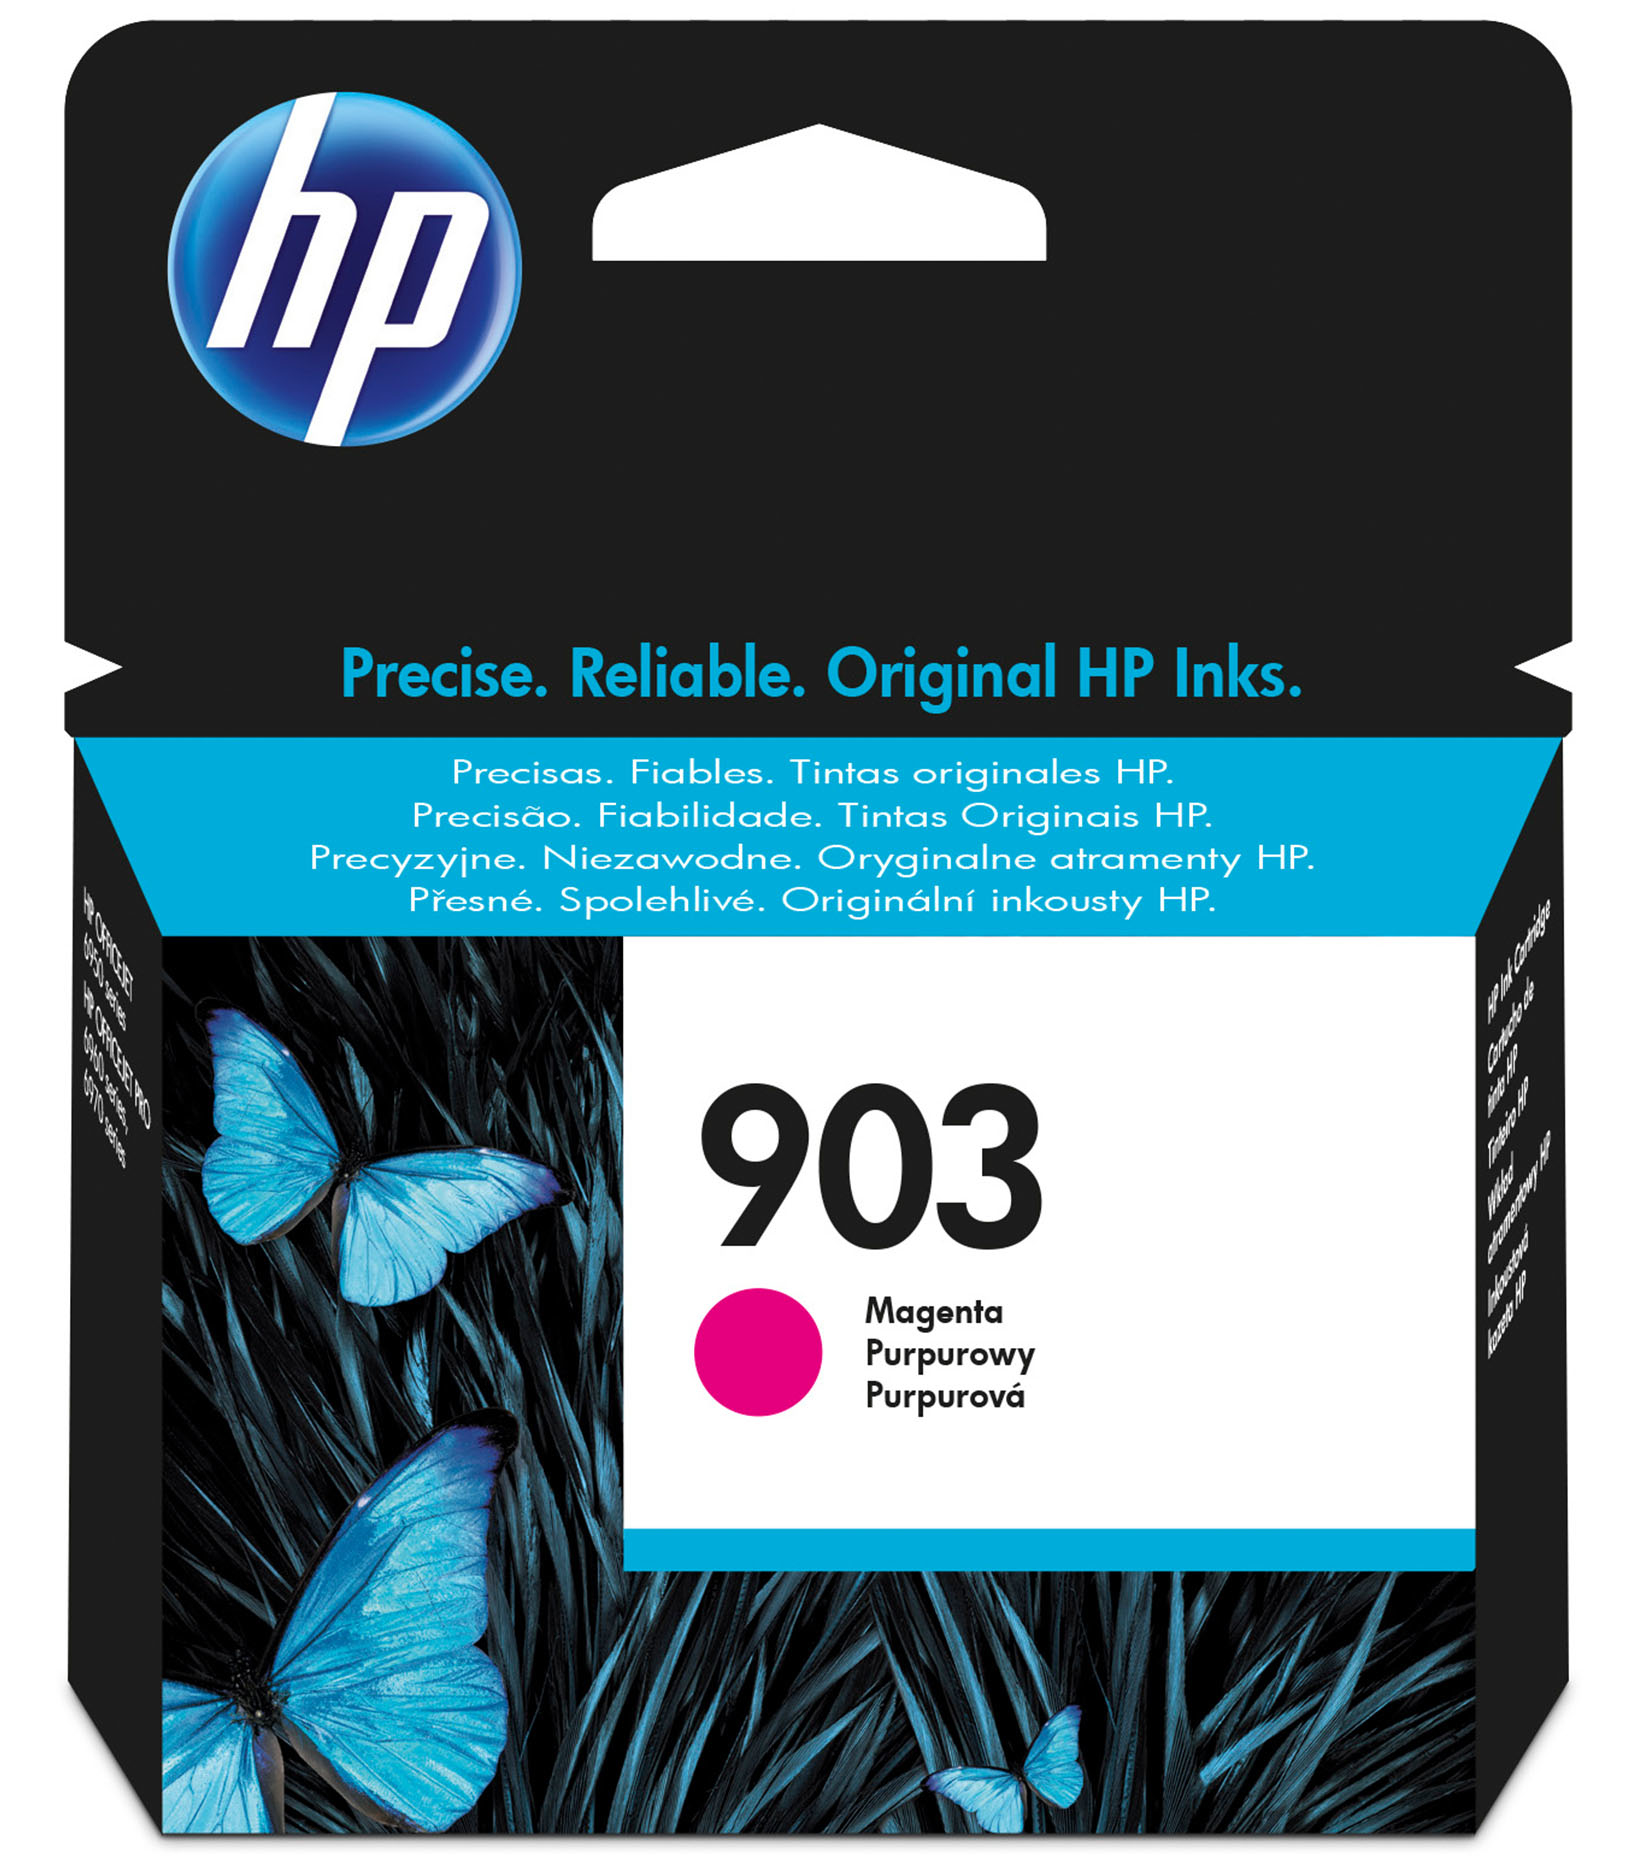 Hpt6l91ae      Hp 903 Magenta Ink Cartridge   Hp 903 Magenta Ink Cartridge                                 - UF01